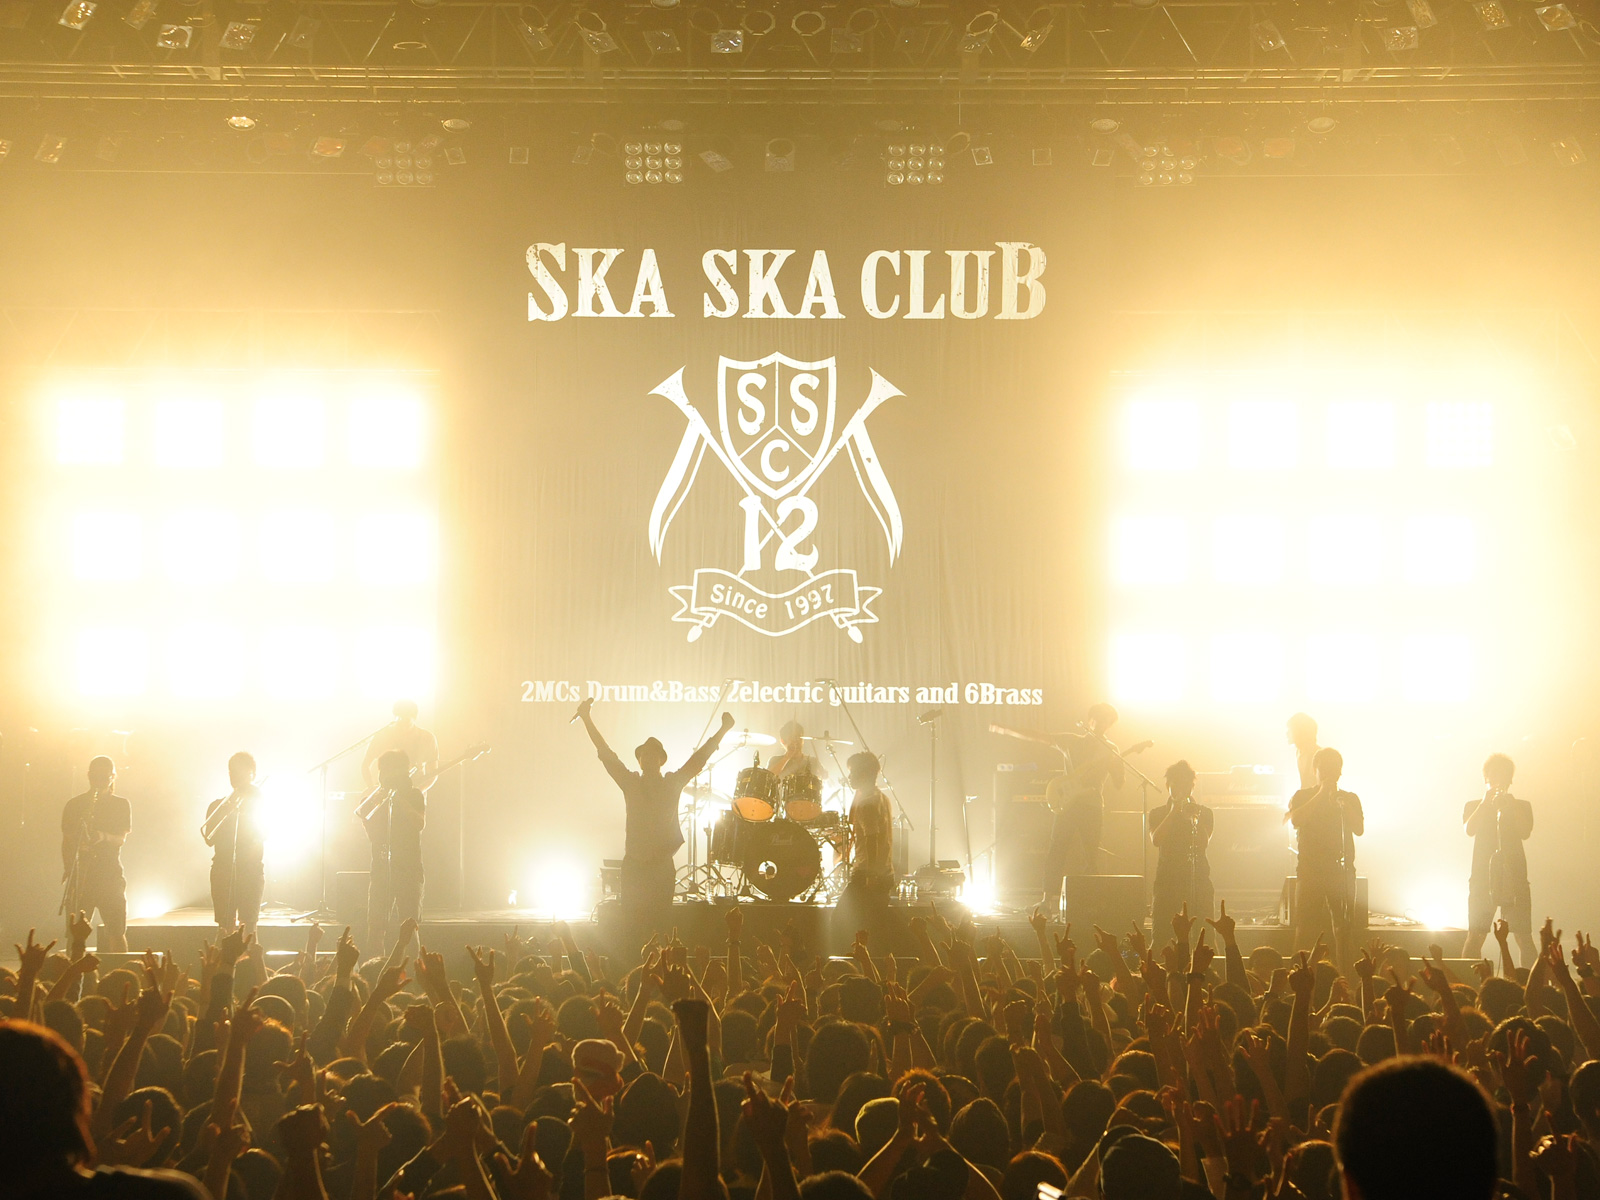 SKA SKA CLUB official website